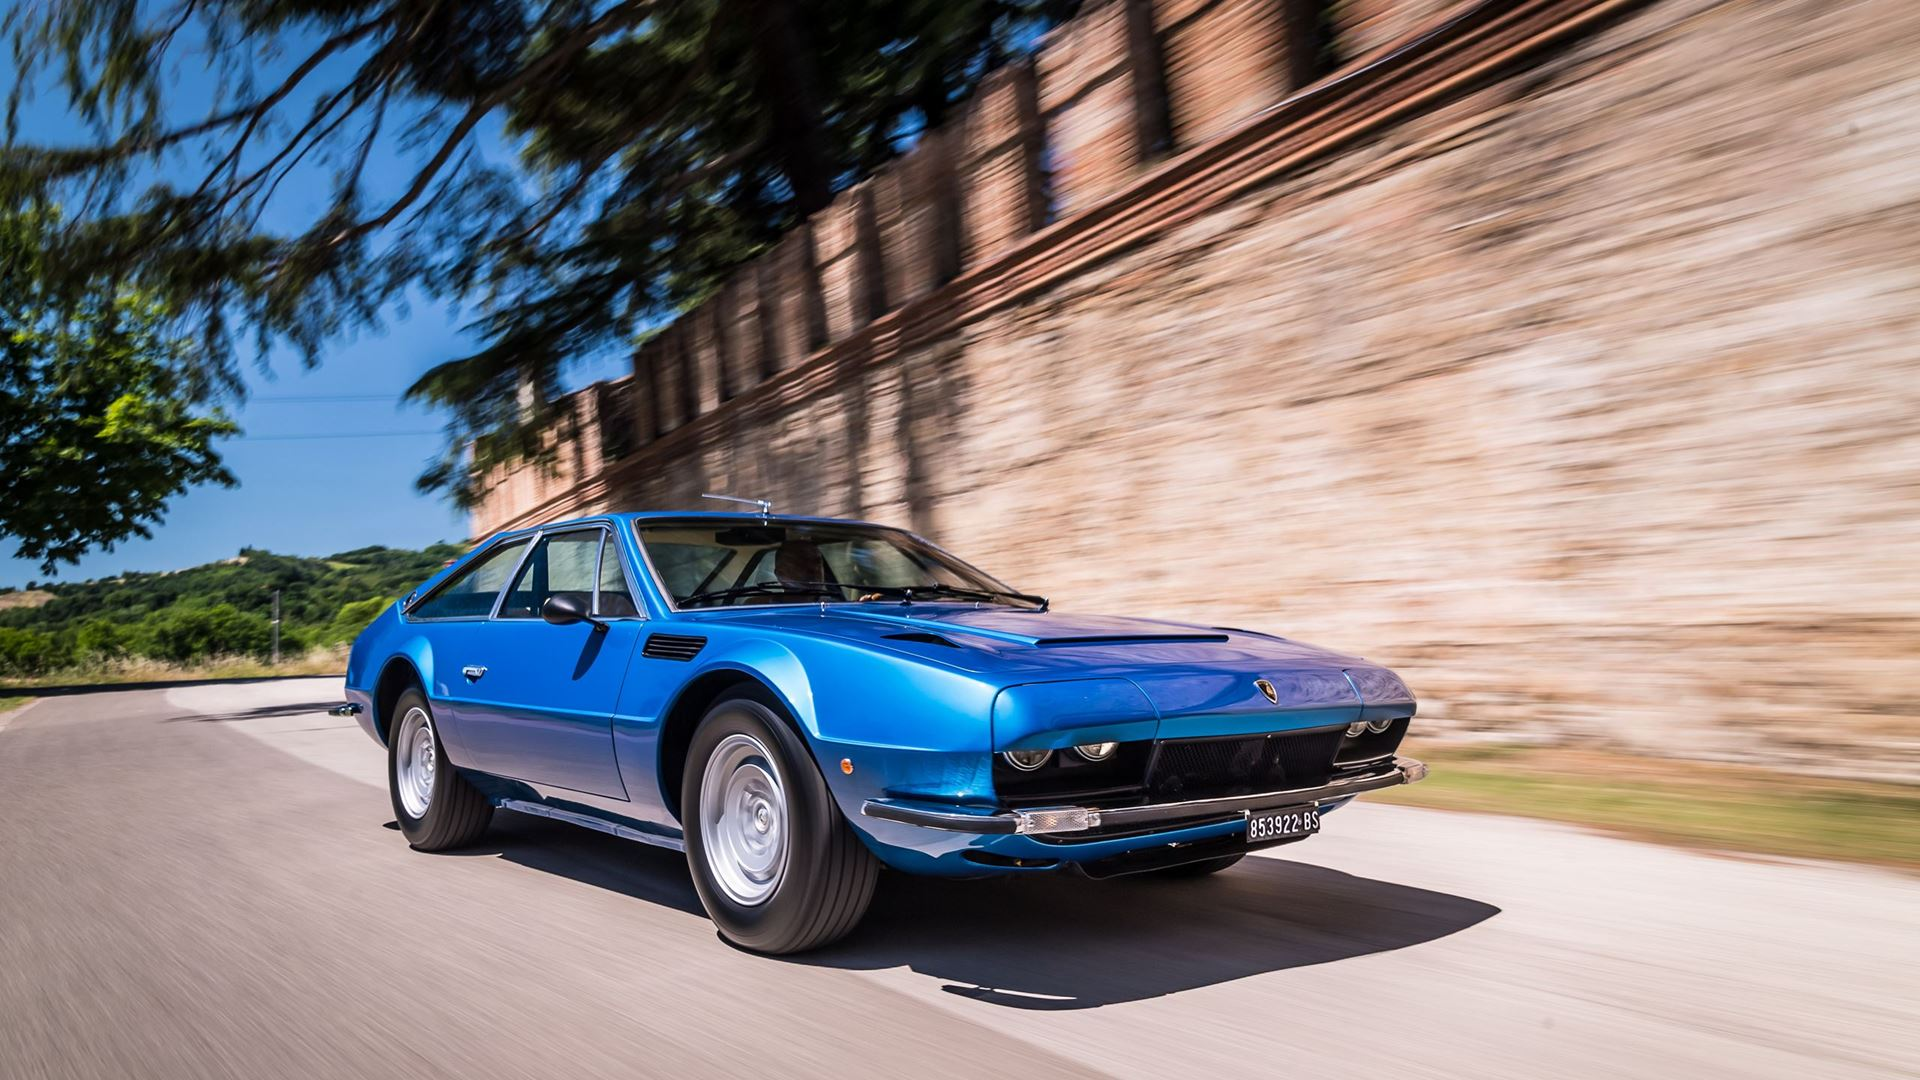 Lamborghini celebrates the 50th Anniversary of the Jarama GT - Image 7